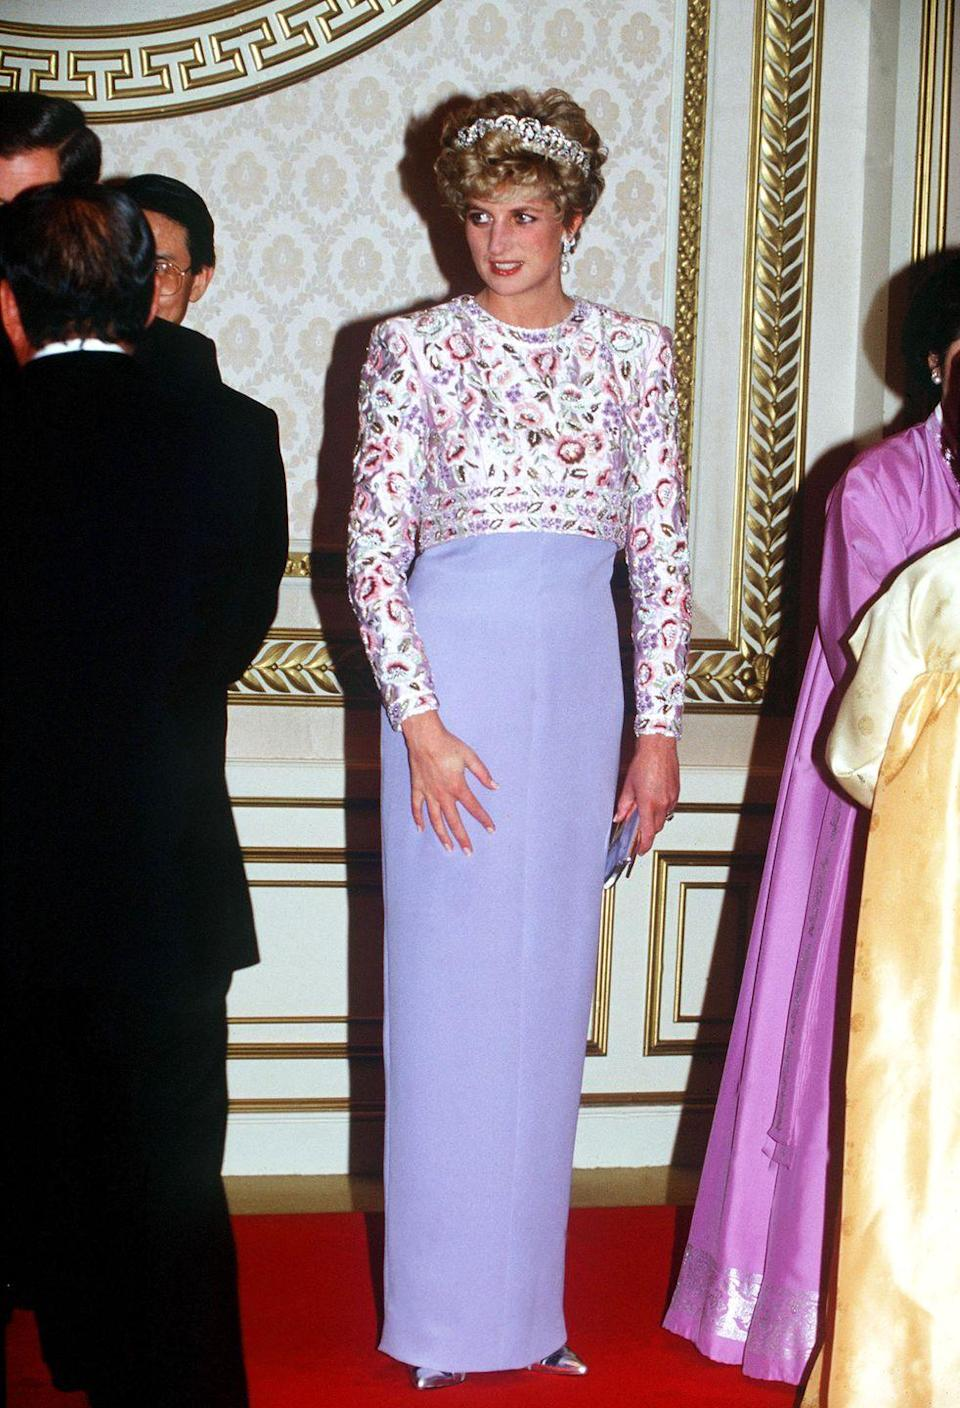 <p>Princess Diana wore her family's Spencer tiara with an elegant Catherine Walker evening gown in 1992. The Princess of Wales wore the floral embroidered bodice and crepe sheath skirt to a banquet in Seoul, South Korea. </p>